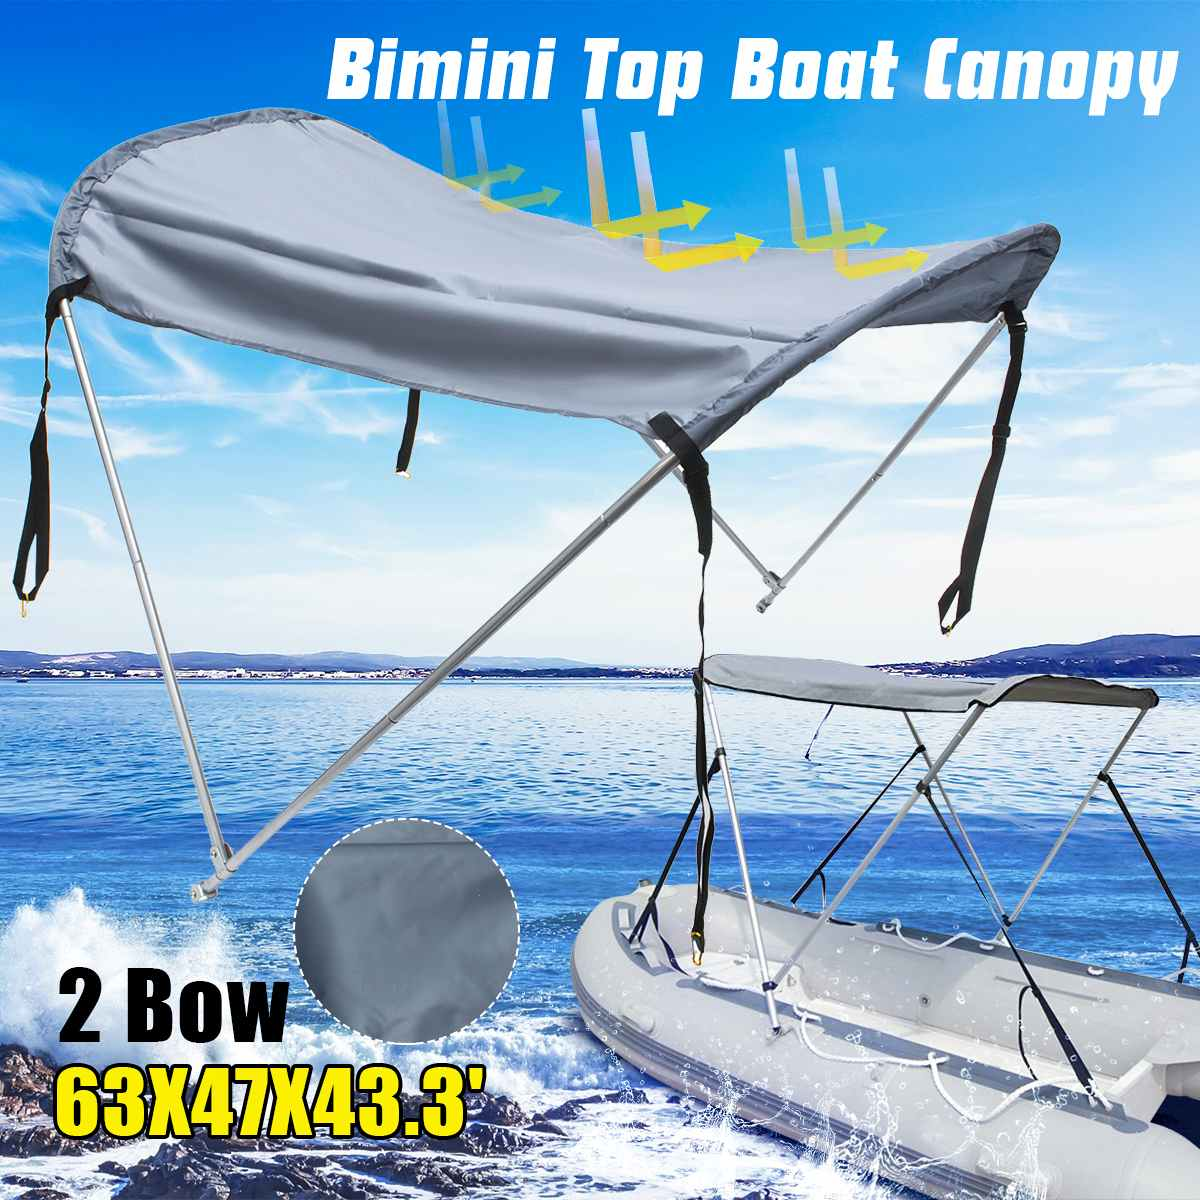 Waterproof <font><b>Boat</b></font> <font><b>Bimini</b></font> <font><b>Top</b></font> Folding Canopy Aluminium Alloy Rear Ship UV Tent Sunshade image